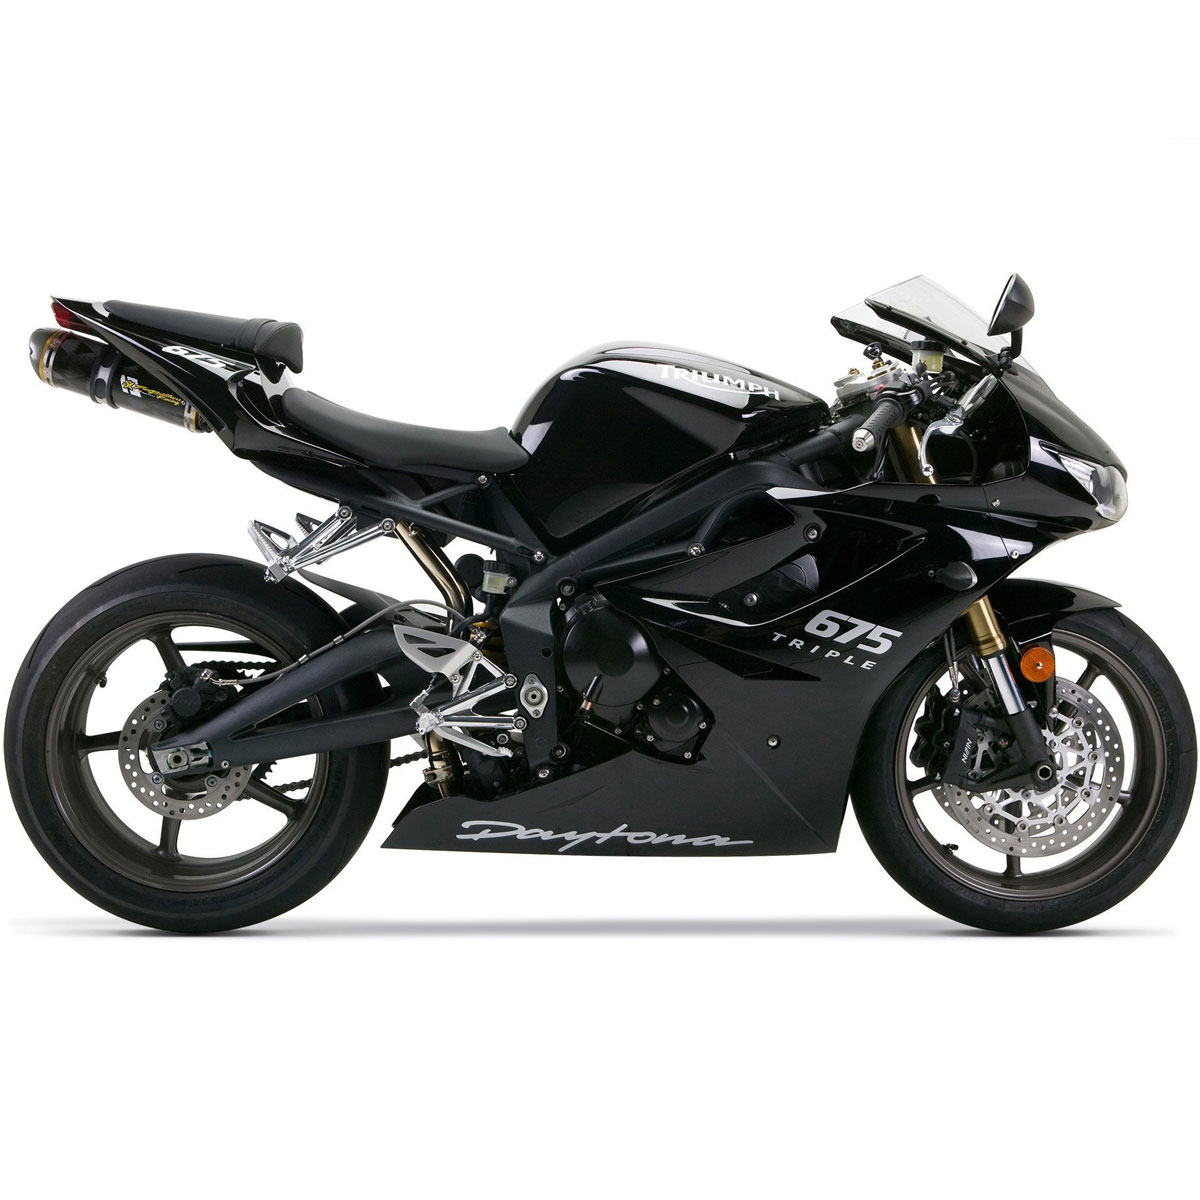 Two Brothers M5 Slip-On Exhaust for Daytona 675 06-12